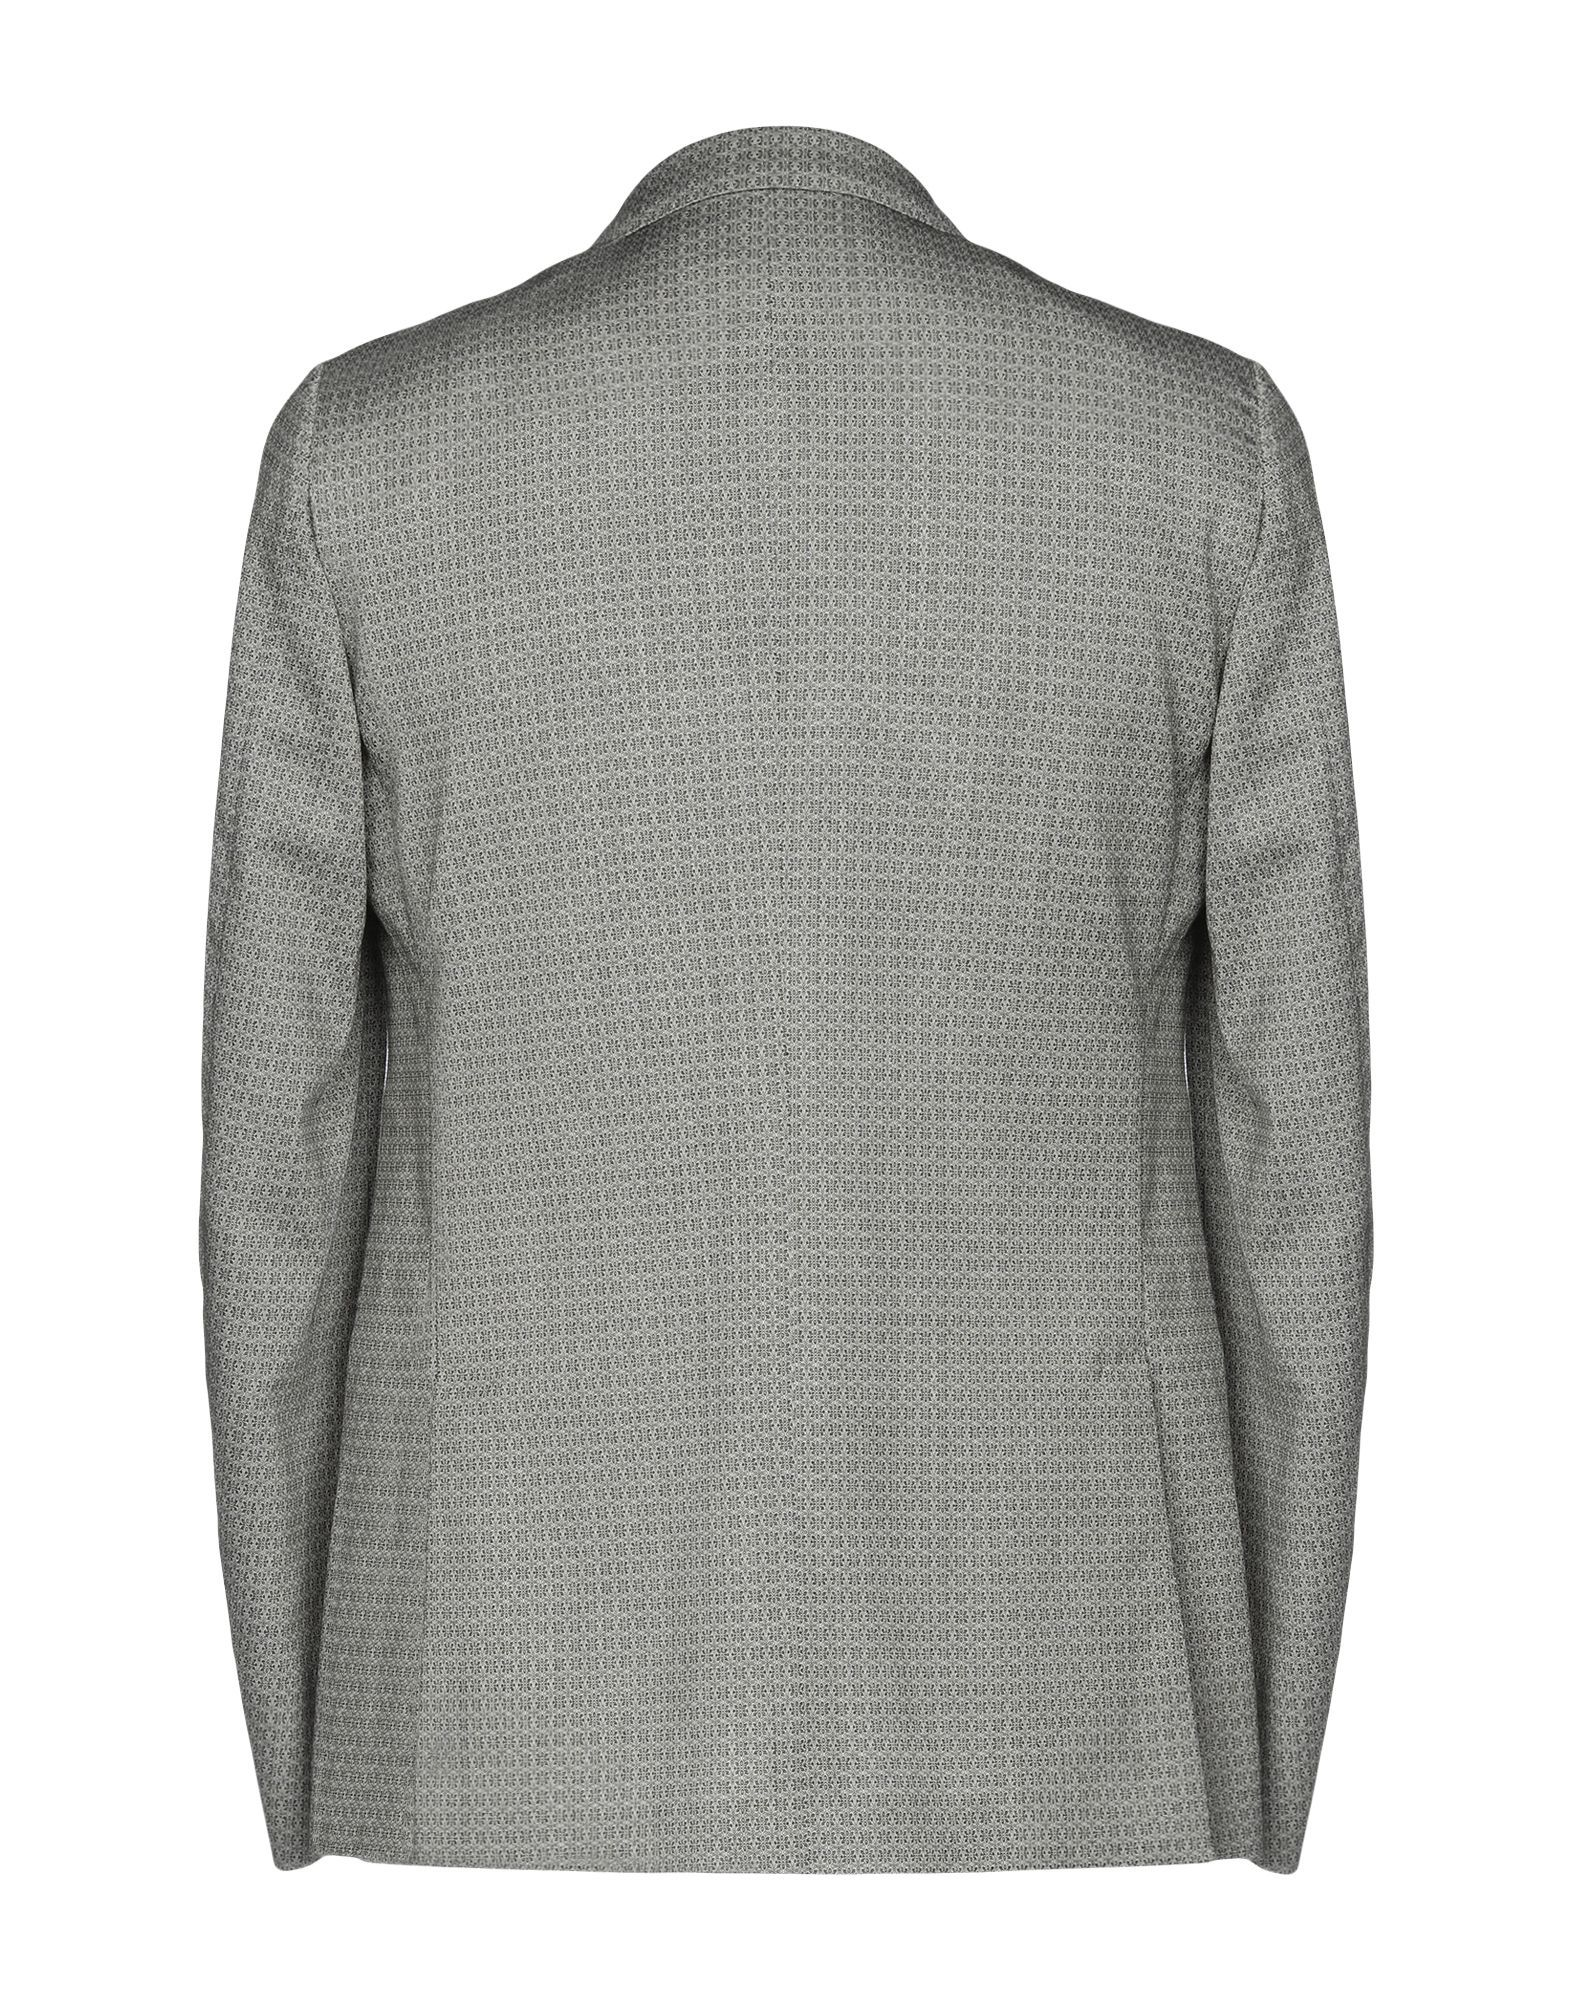 SUITS AND JACKETS Man Cc Collection Corneliani Grey Virgin Wool